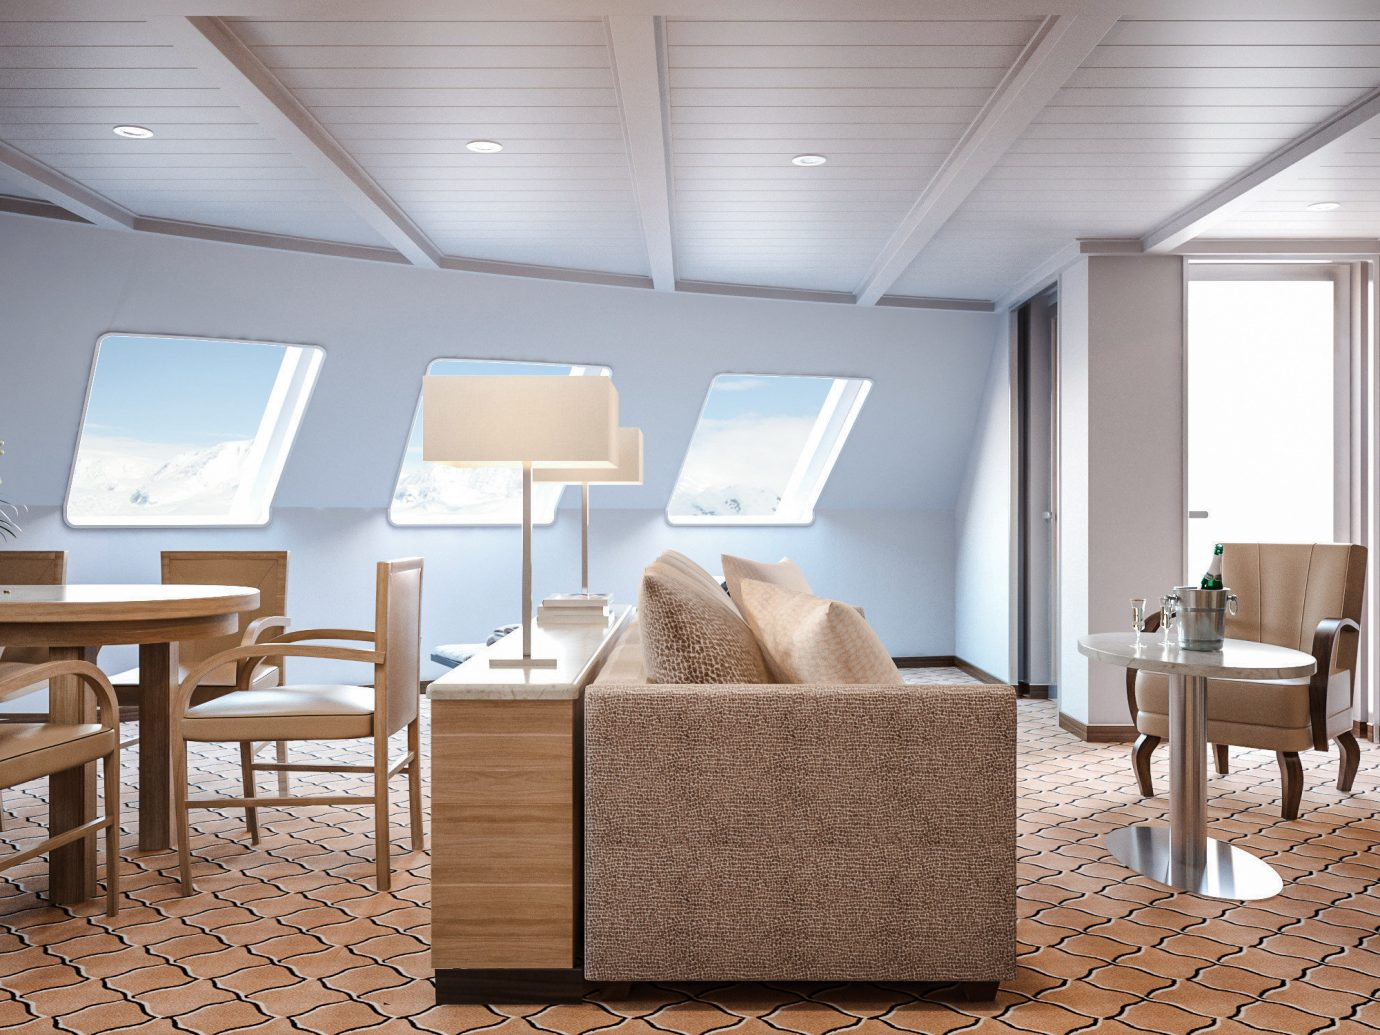 Cruise Travel Luxury Travel Trip Ideas indoor floor wall ceiling room chair Living interior design furniture Suite interior designer living room area several